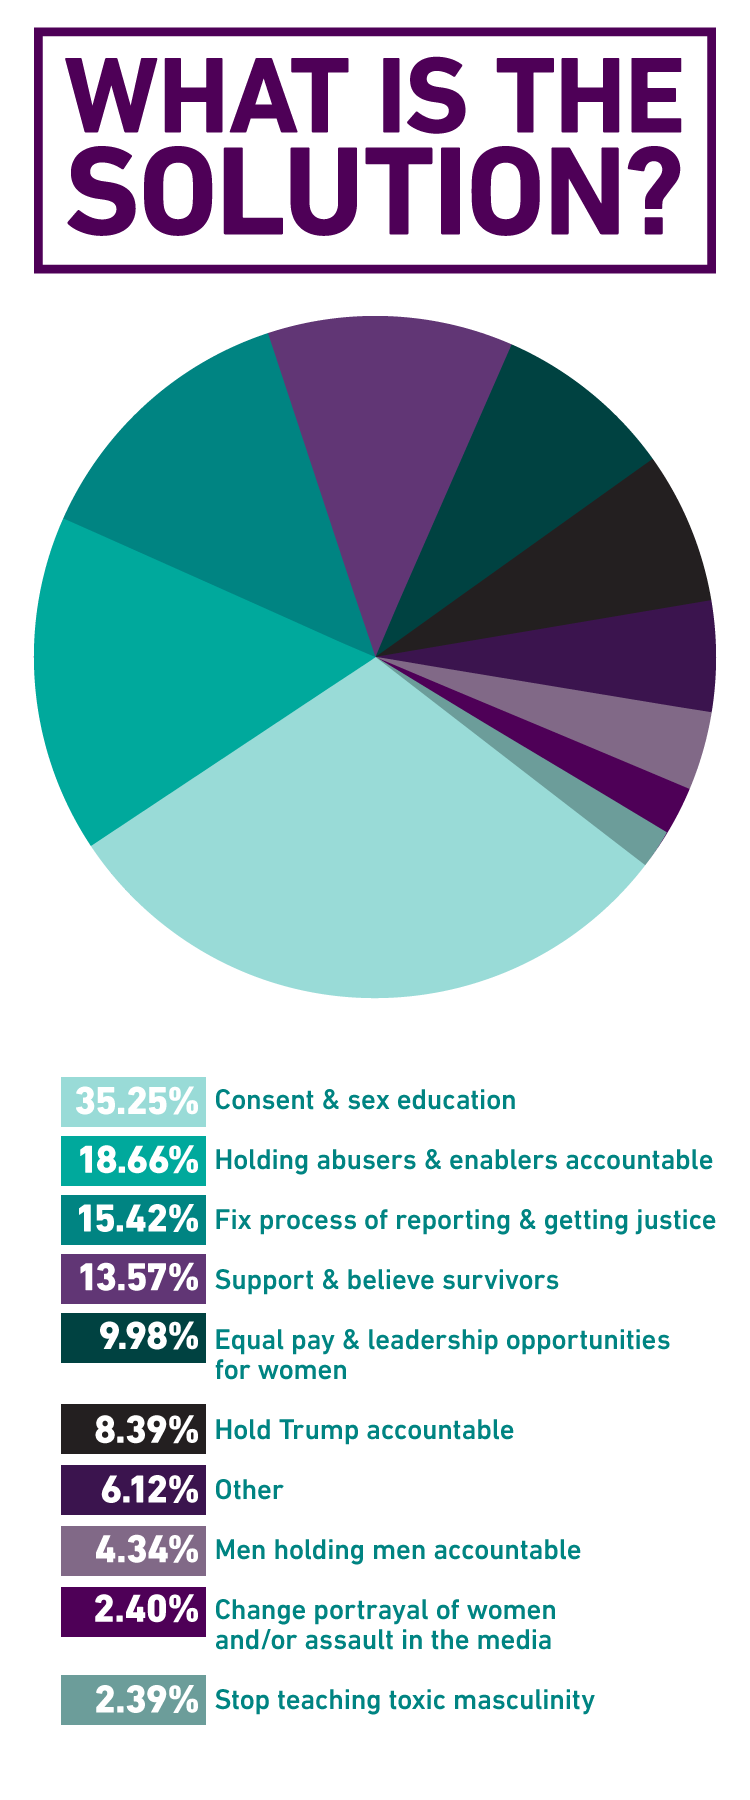 Submissions by category